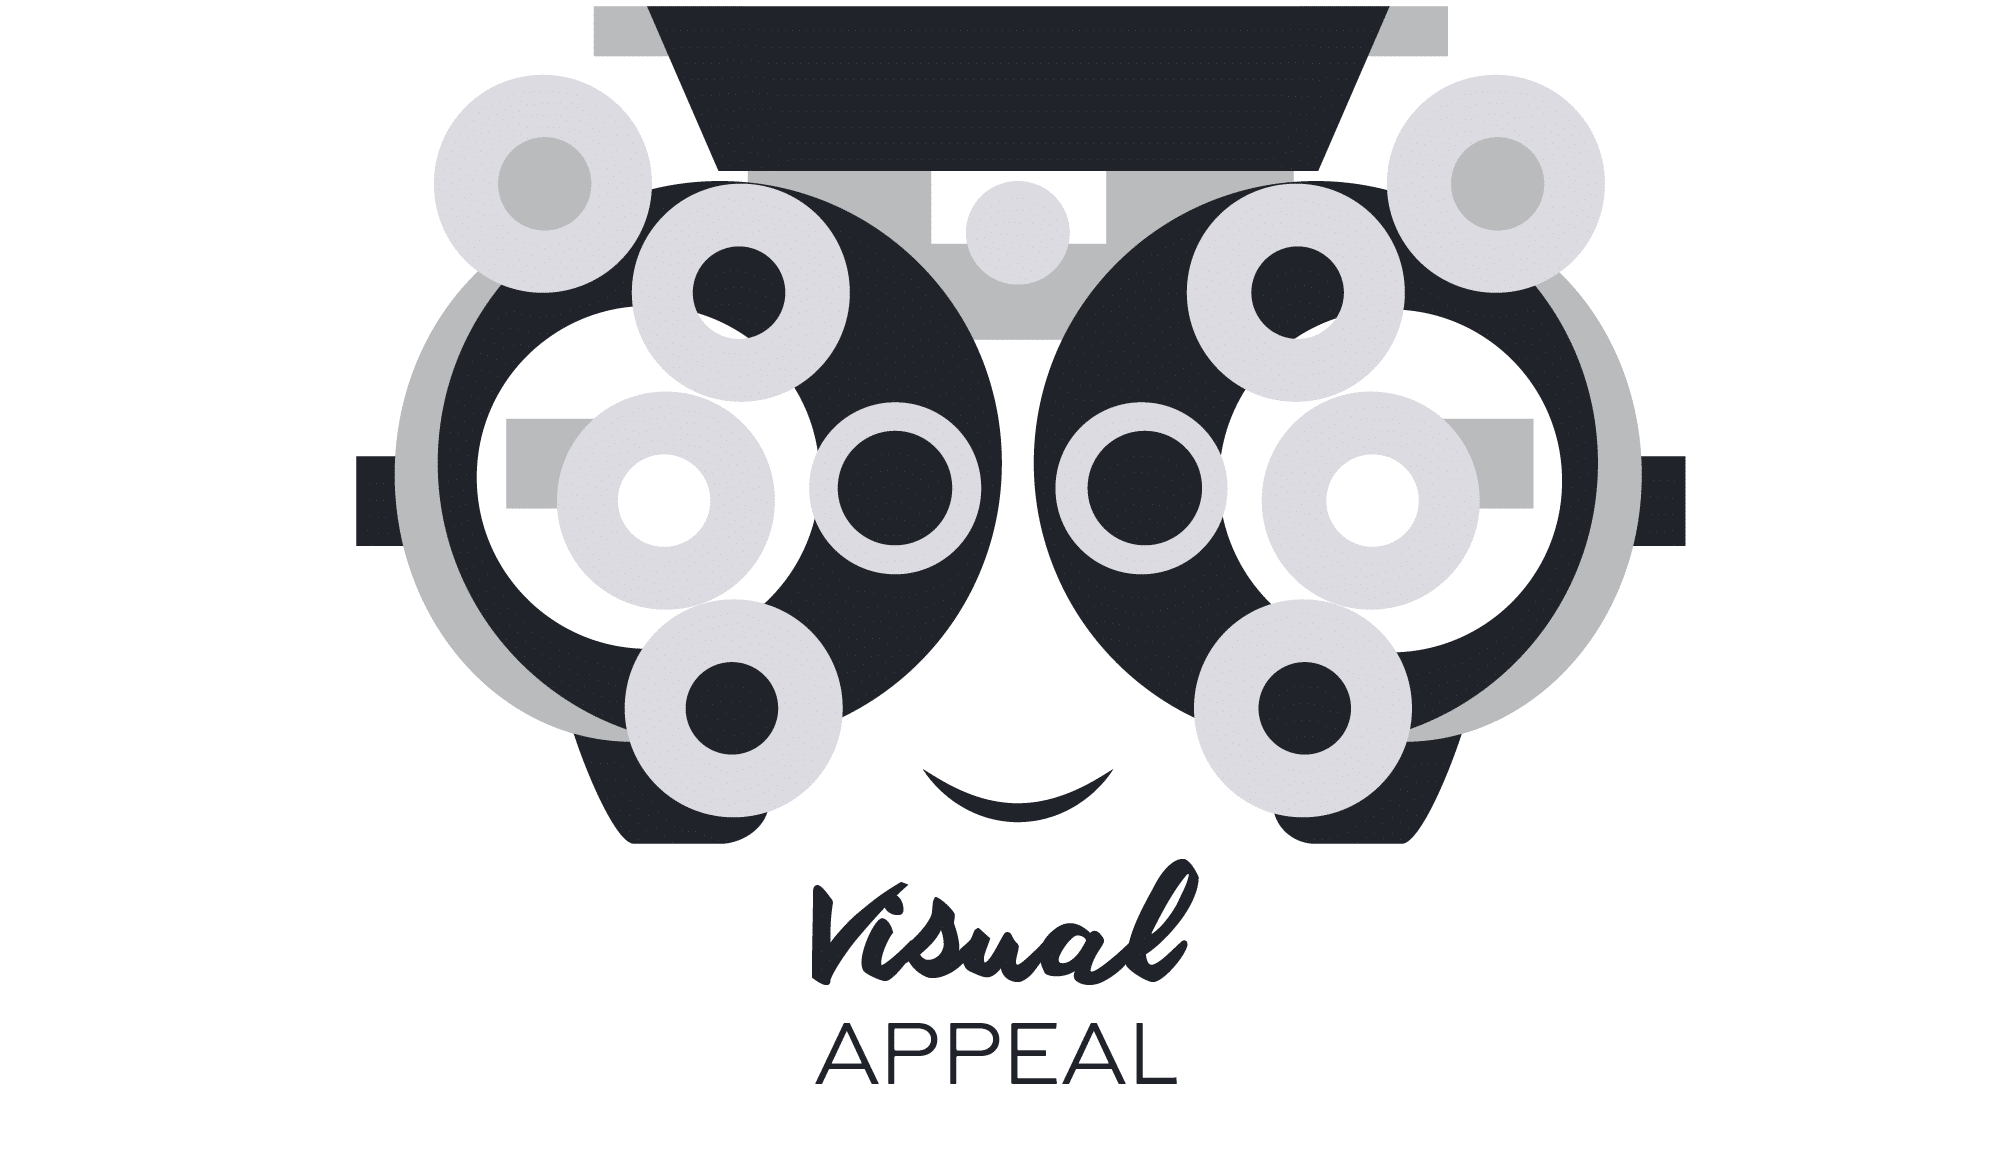 Illustration about the importance of visual appeal in logos.